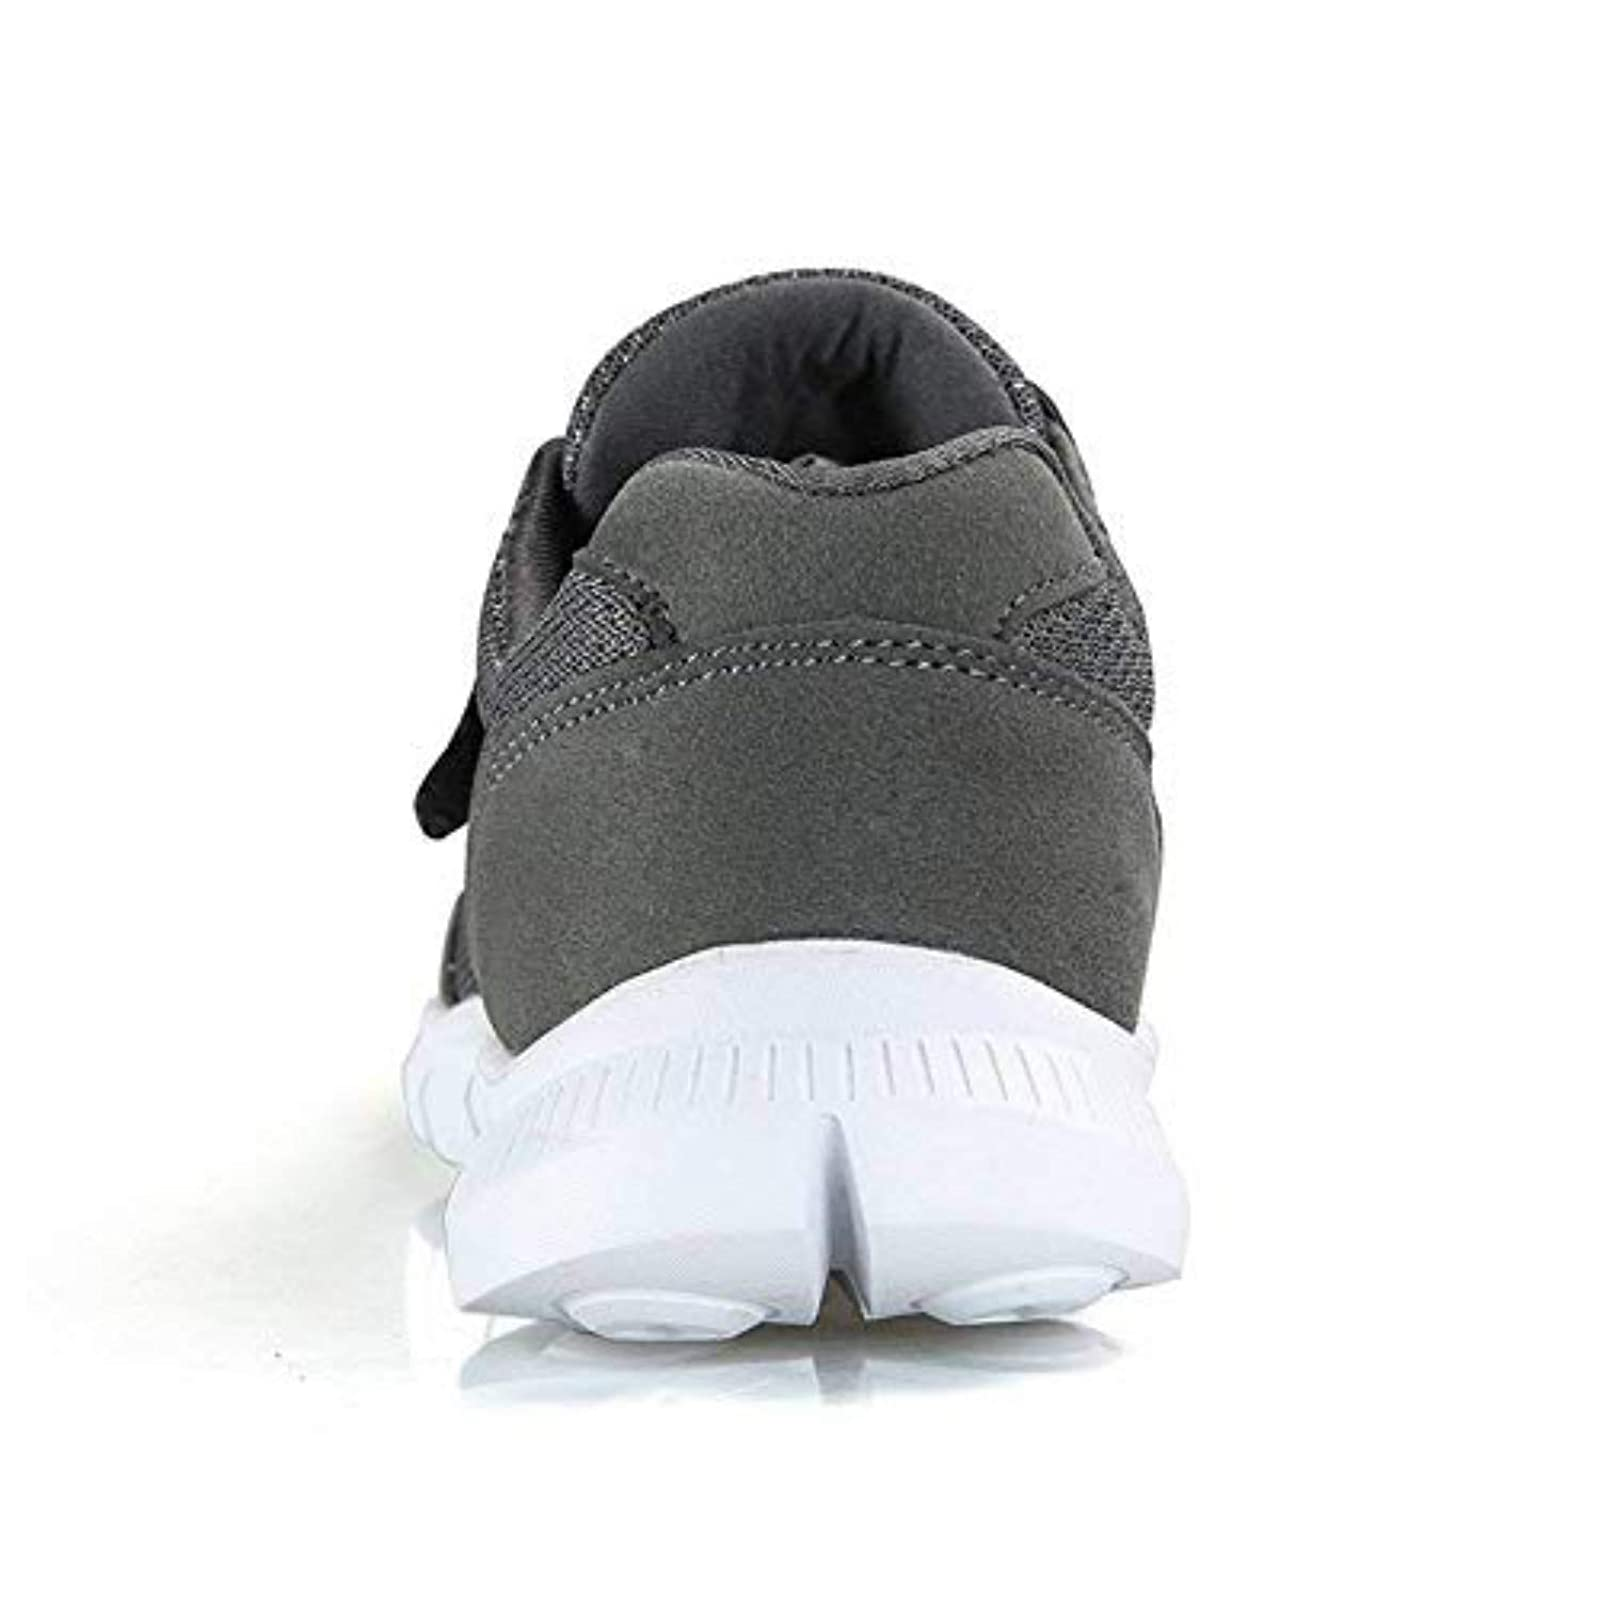 Fires Men's Casual Sneakers Lightweight Athletic - 2